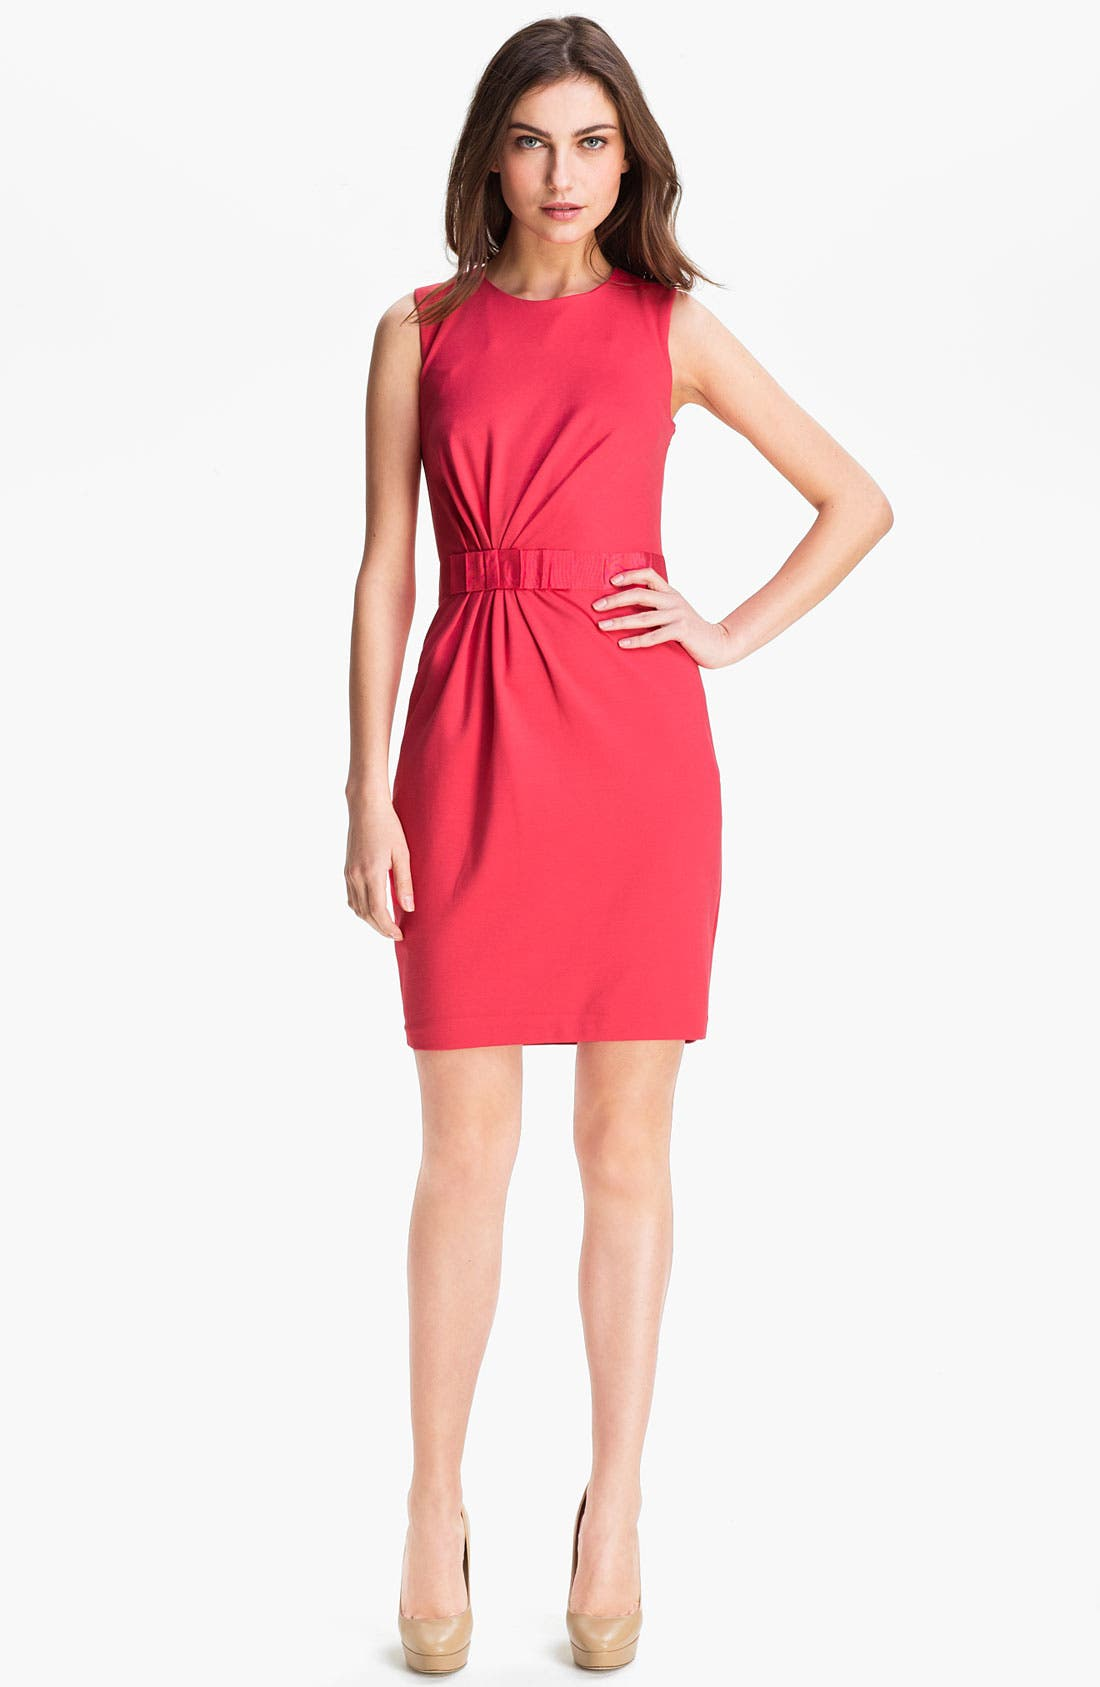 Alternate Image 1 Selected - Ted Baker London Stretch Knit Sheath Dress